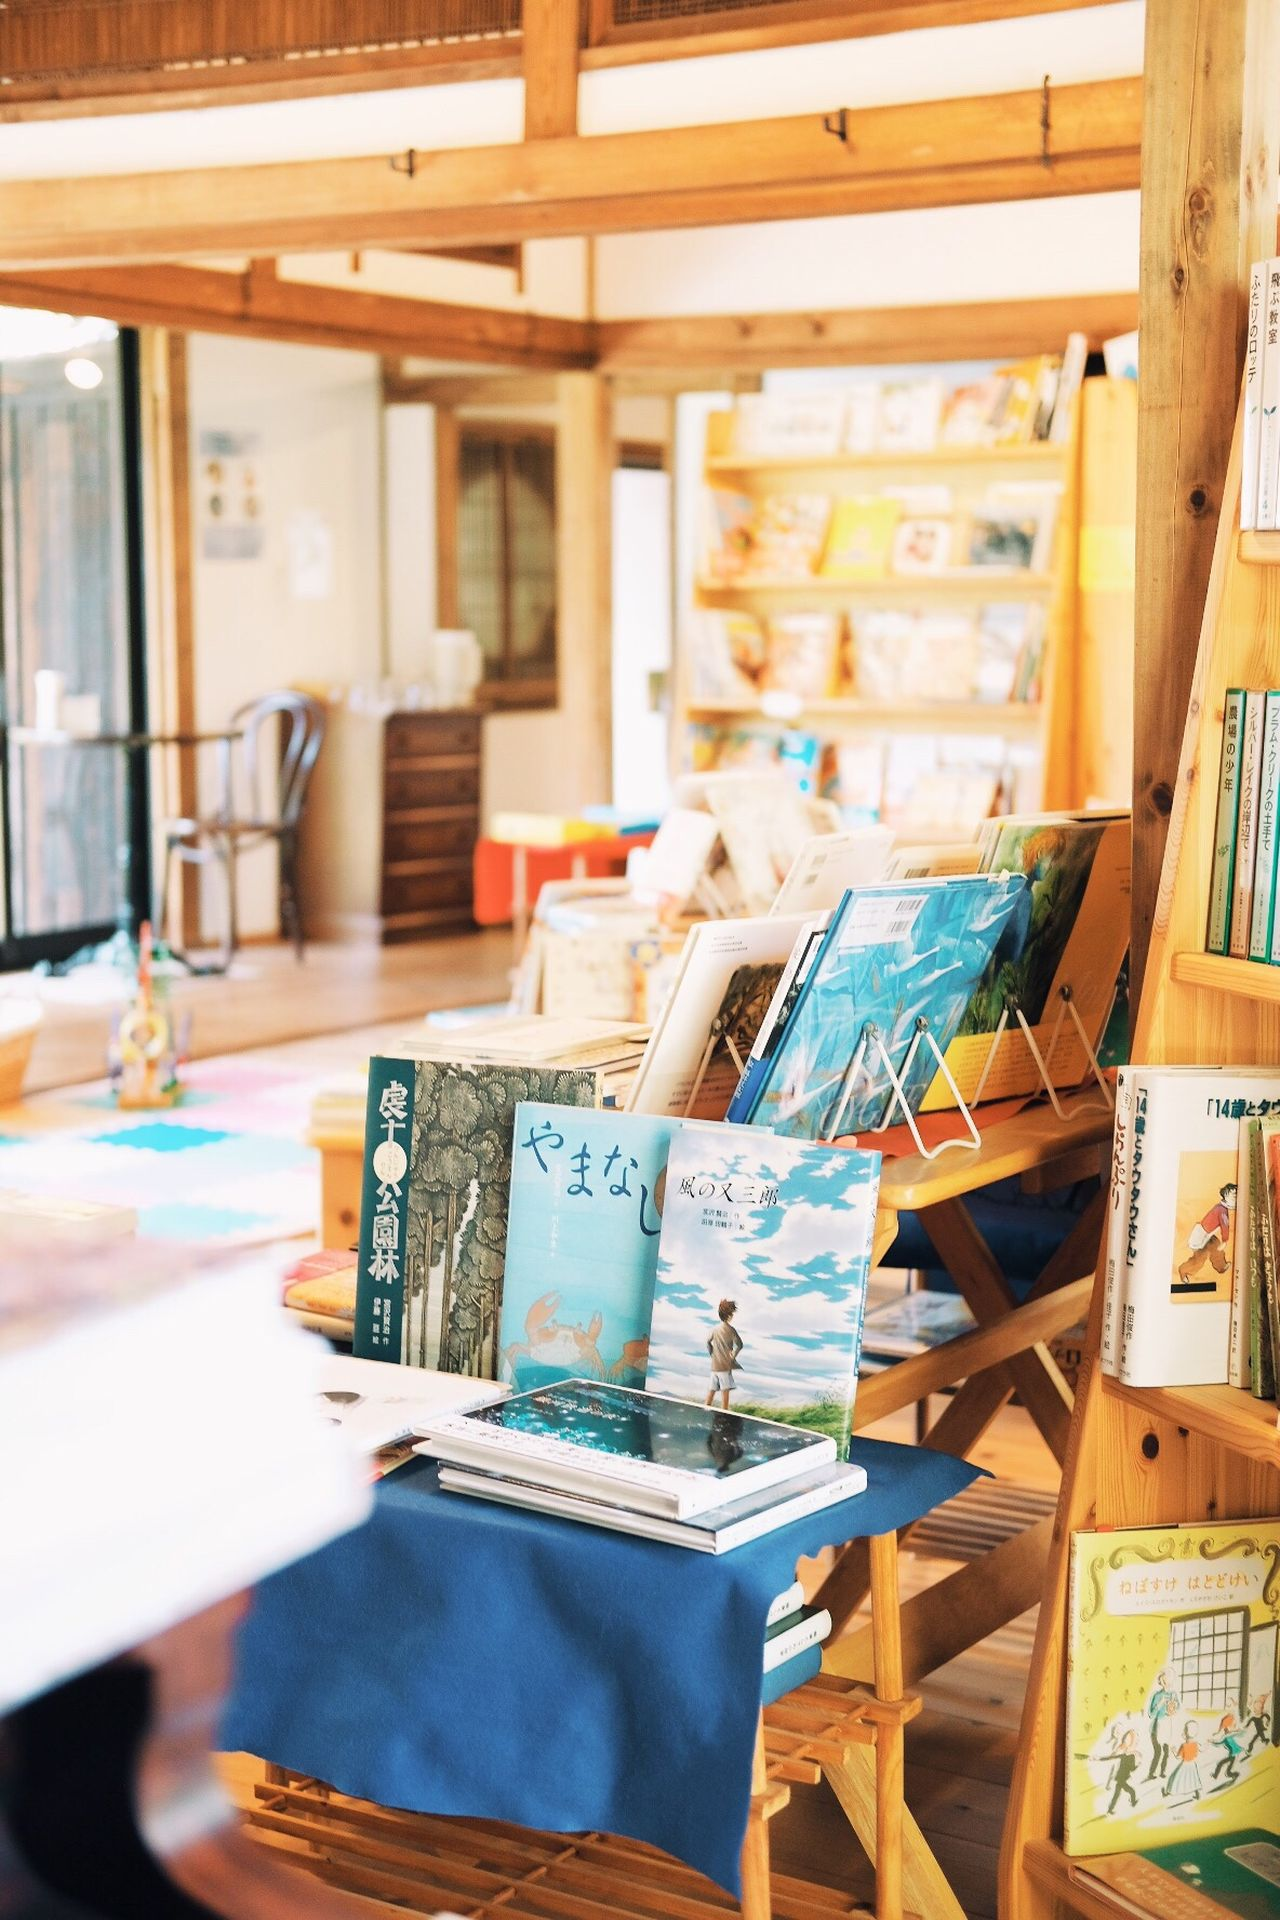 A bookstore in Fukuoka Indoors  Table Home Interior Day No People Books Book Store Japan Travel Travel Photography Wooden House Japanese Culture Japan Photography